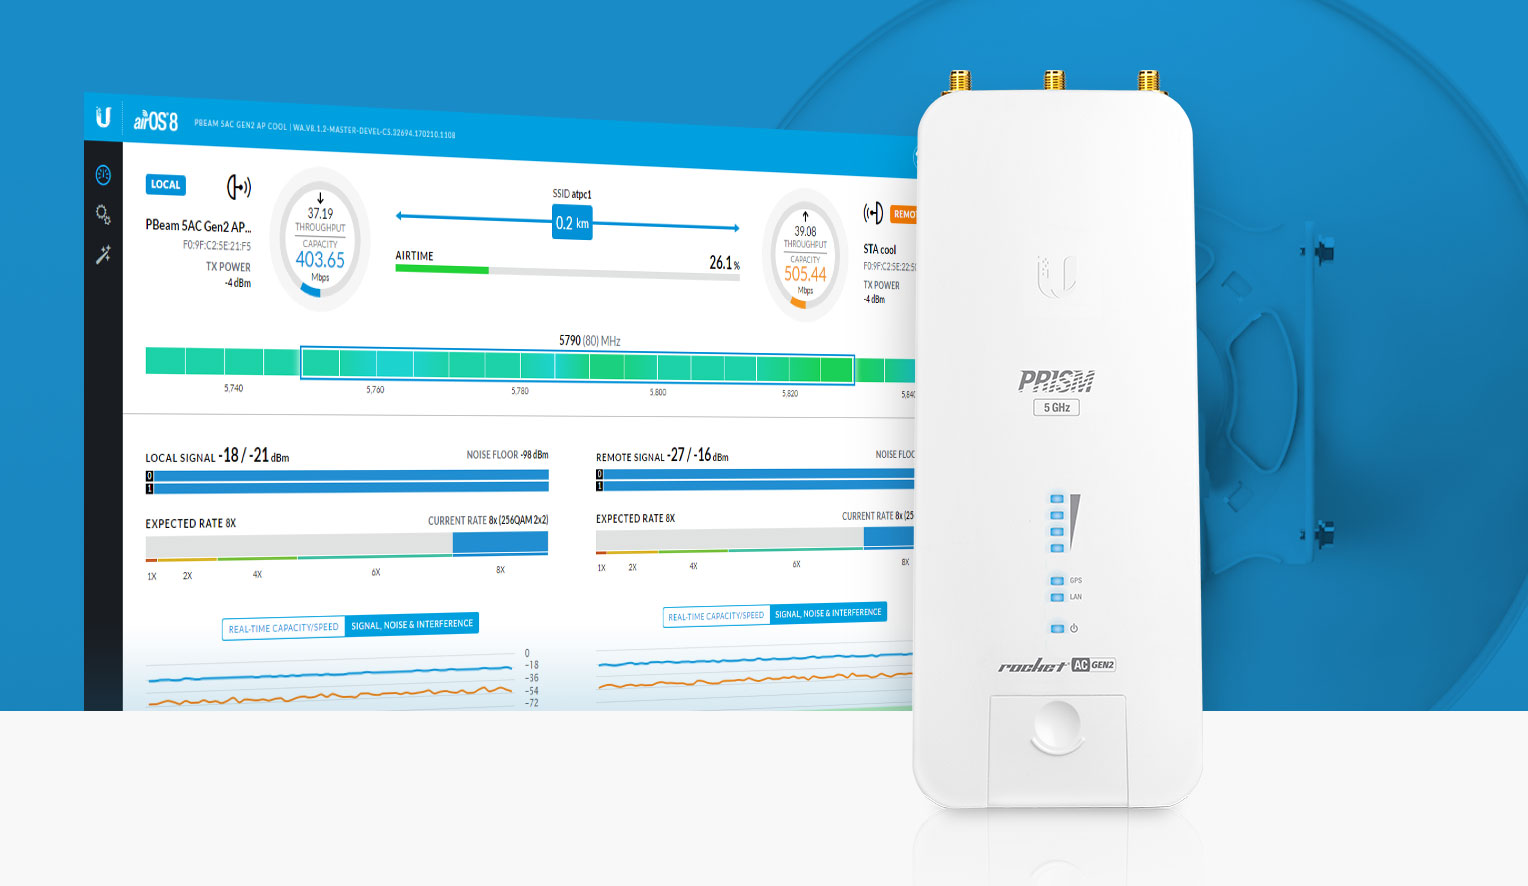 Improving Network Performance with airPRISM - Ubiquiti